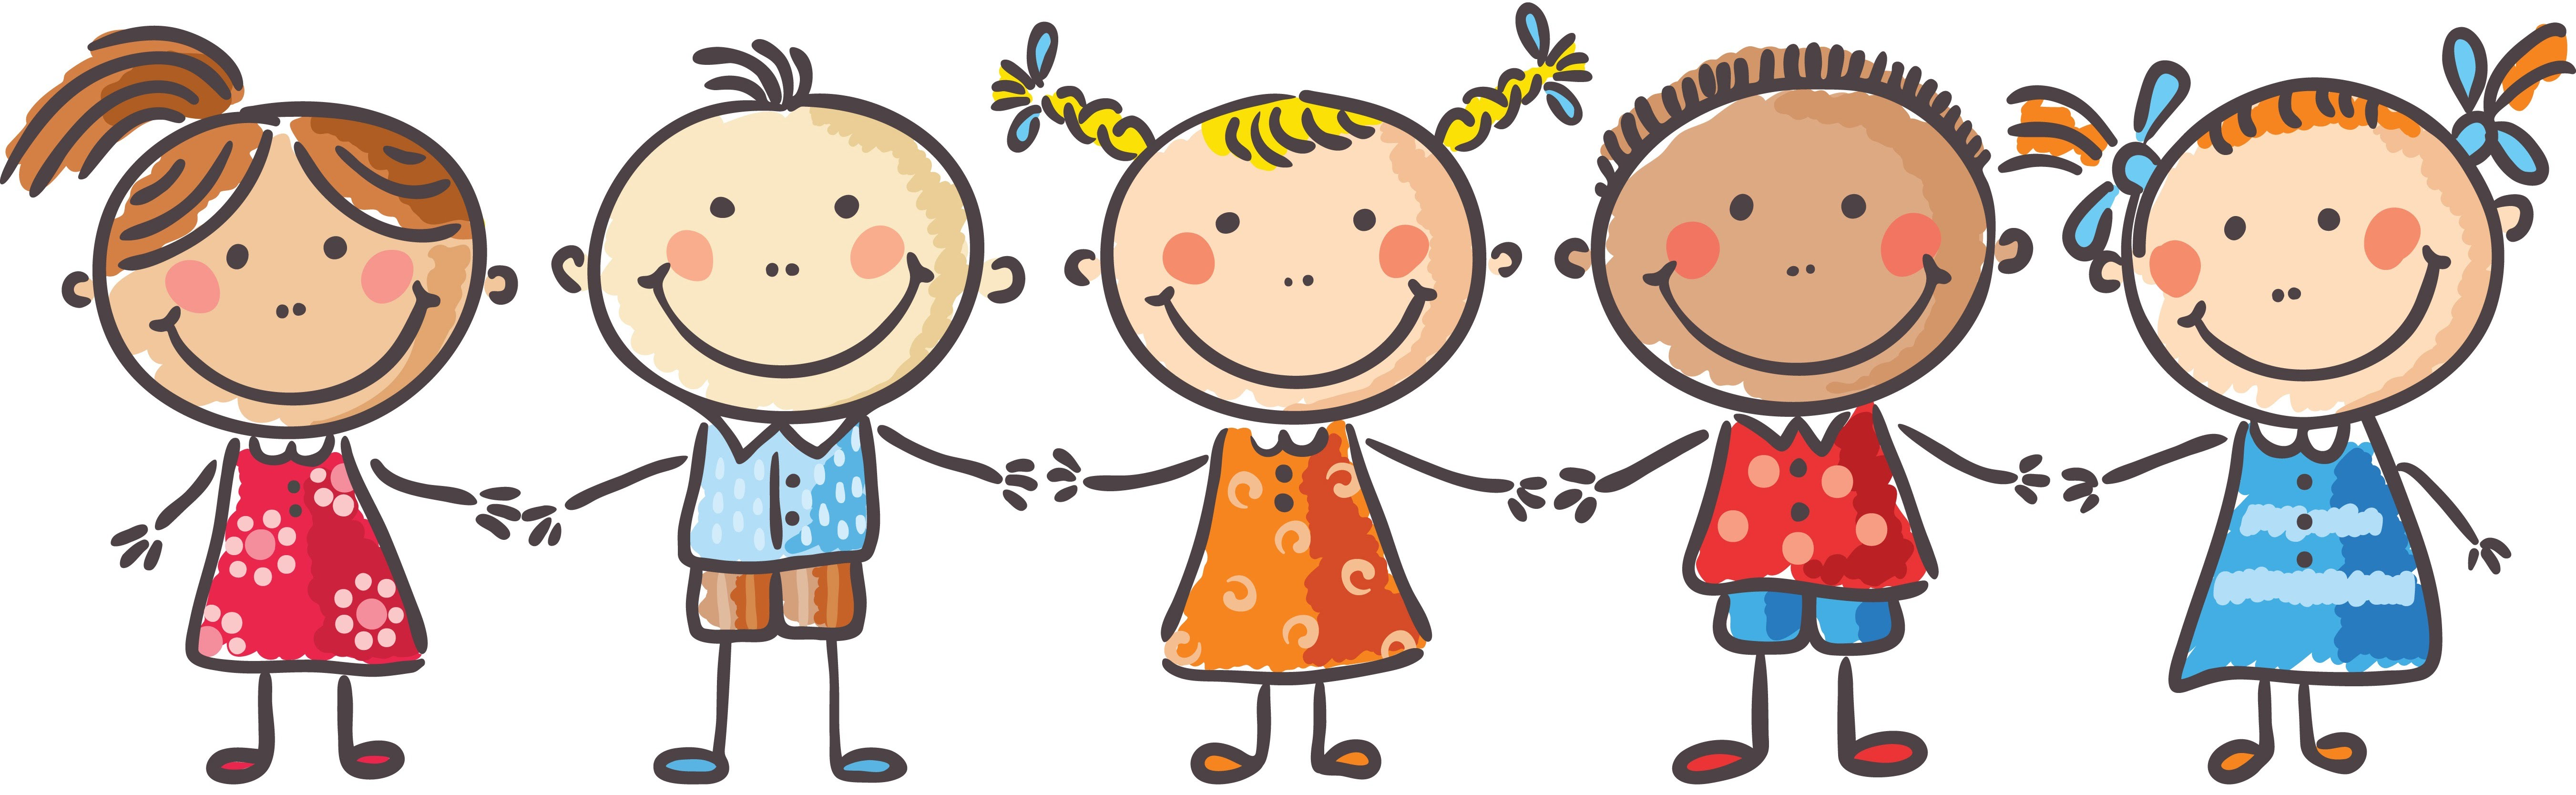 Clipart pediatric png library library Pediatric Clipart | Free download best Pediatric Clipart on ... png library library